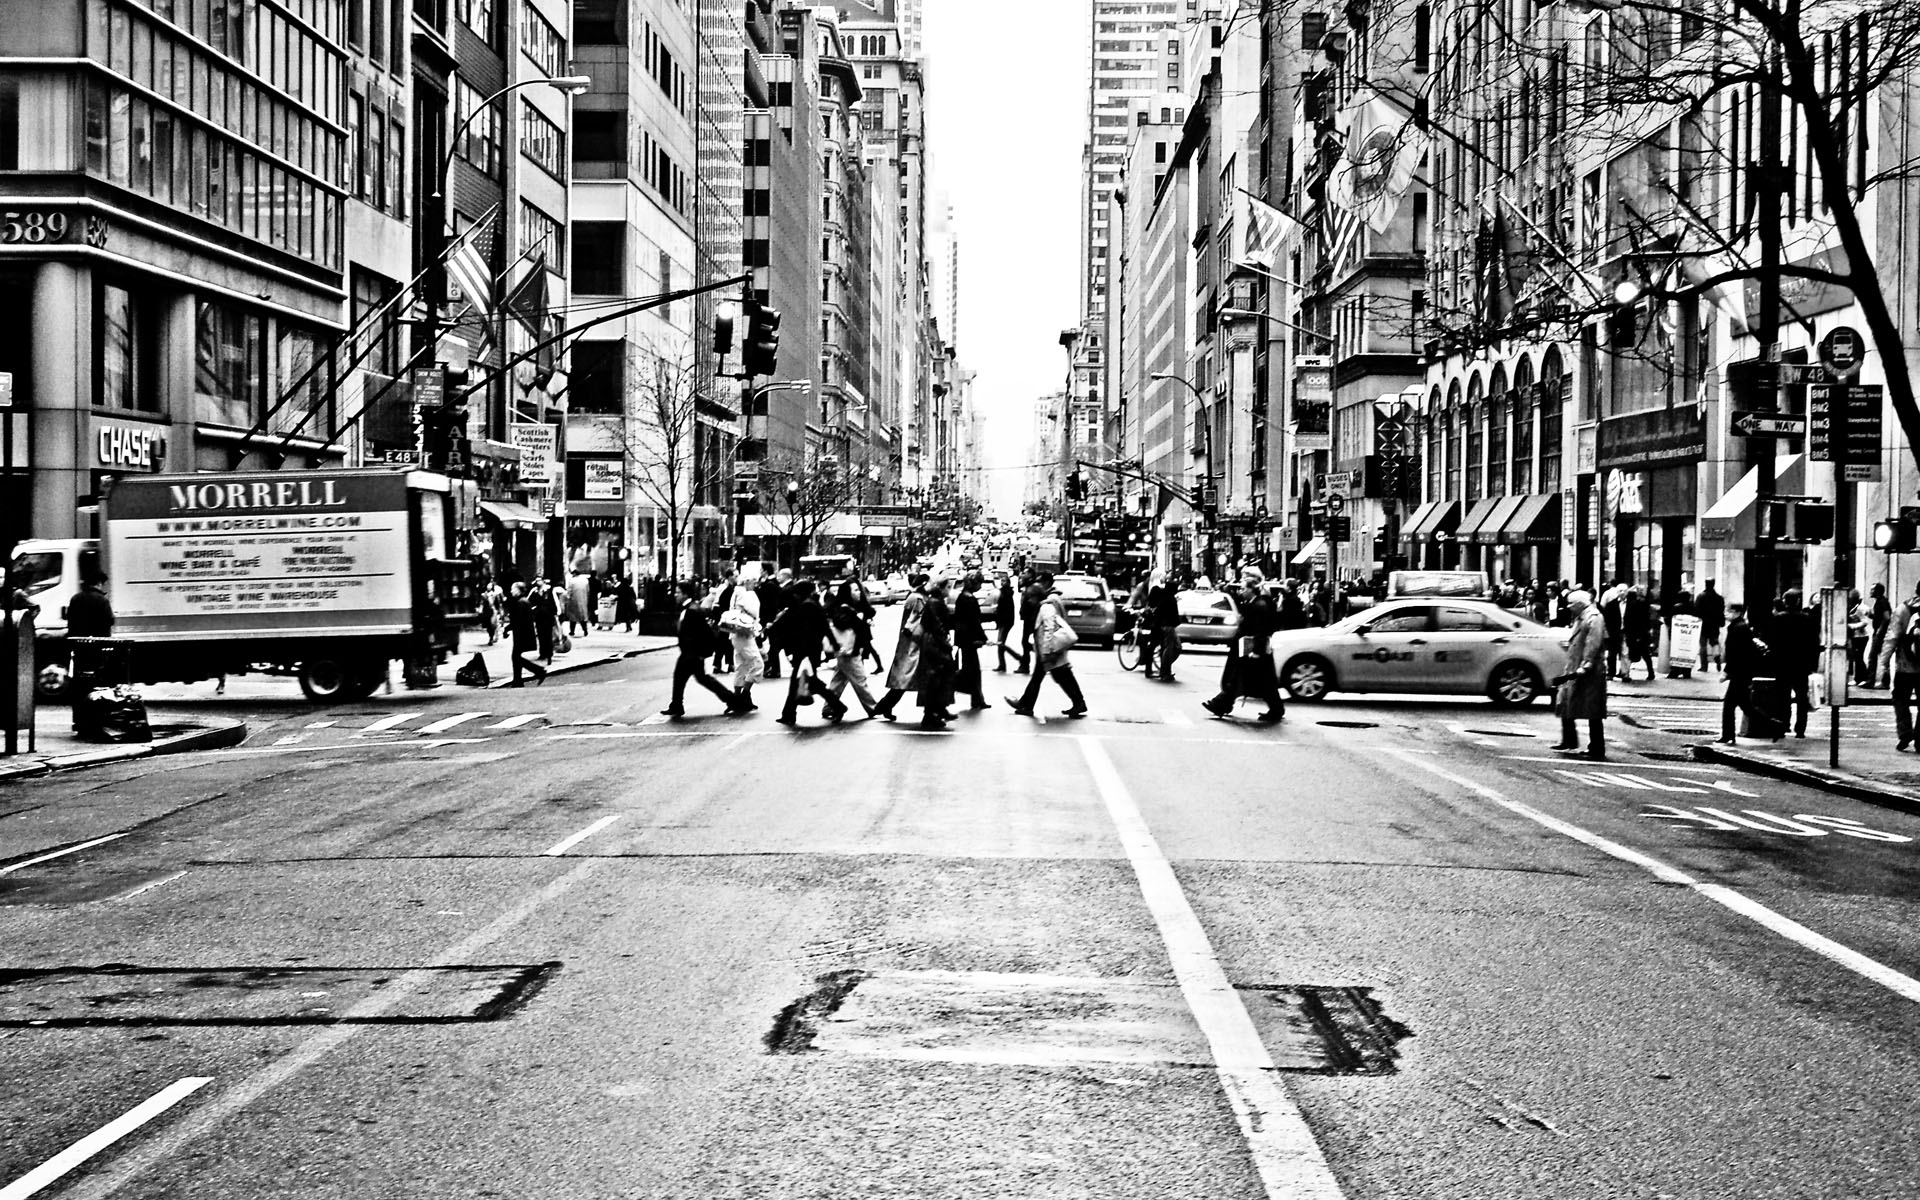 New-York-Street-Life-Wallpaper.jpg